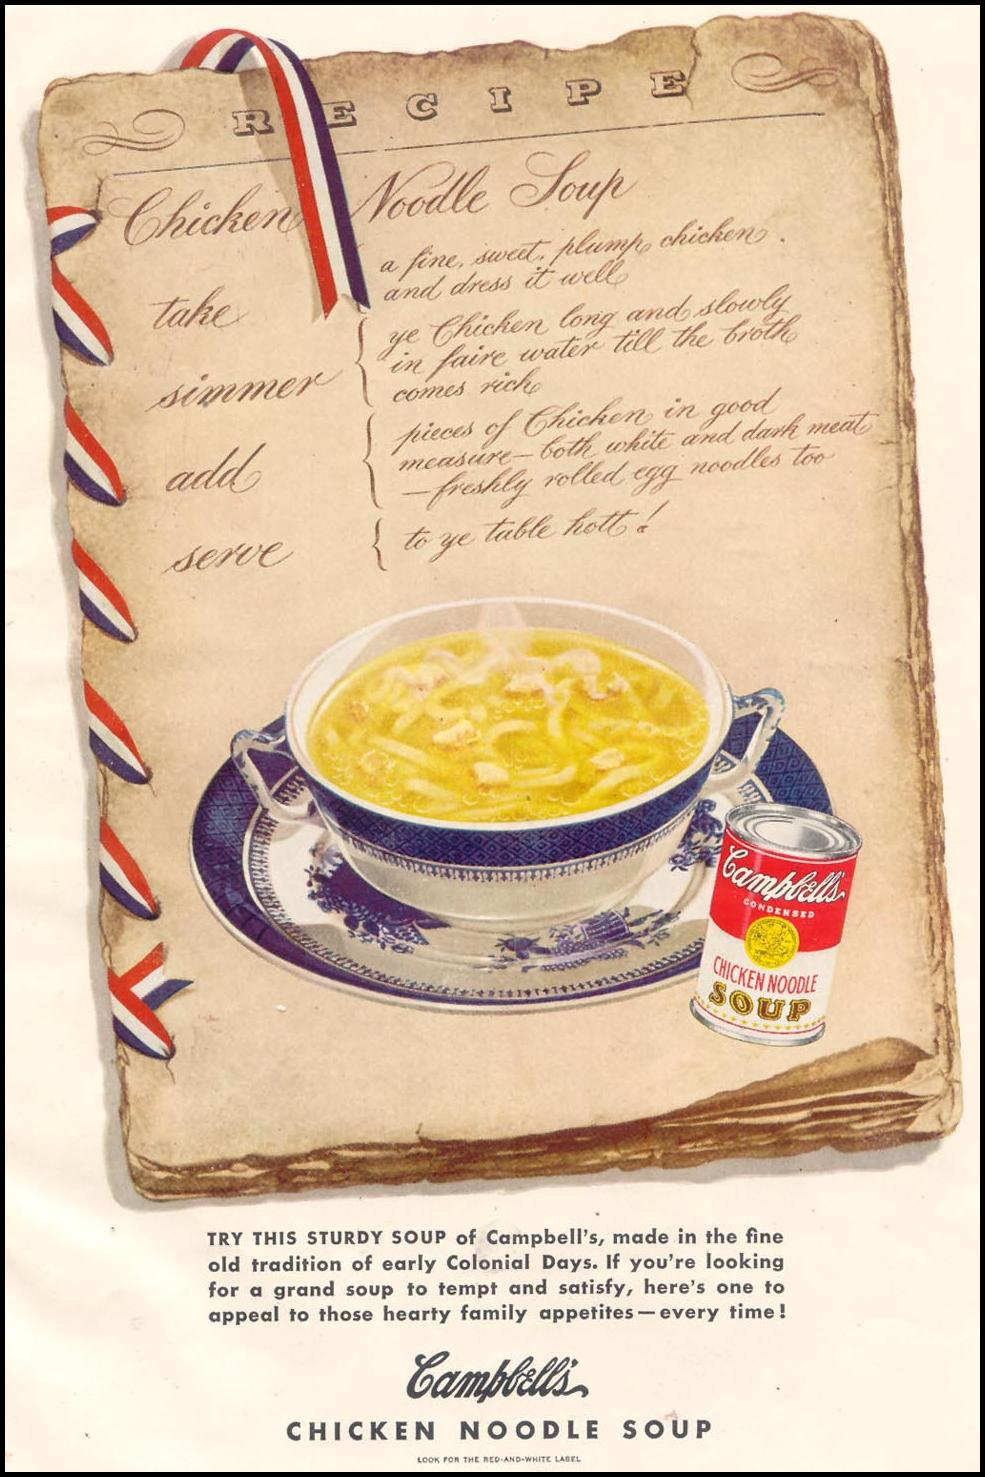 CAMPBELL'S CHICKEN NOODLE SOUP GOOD HOUSEKEEPING 07/01/1949